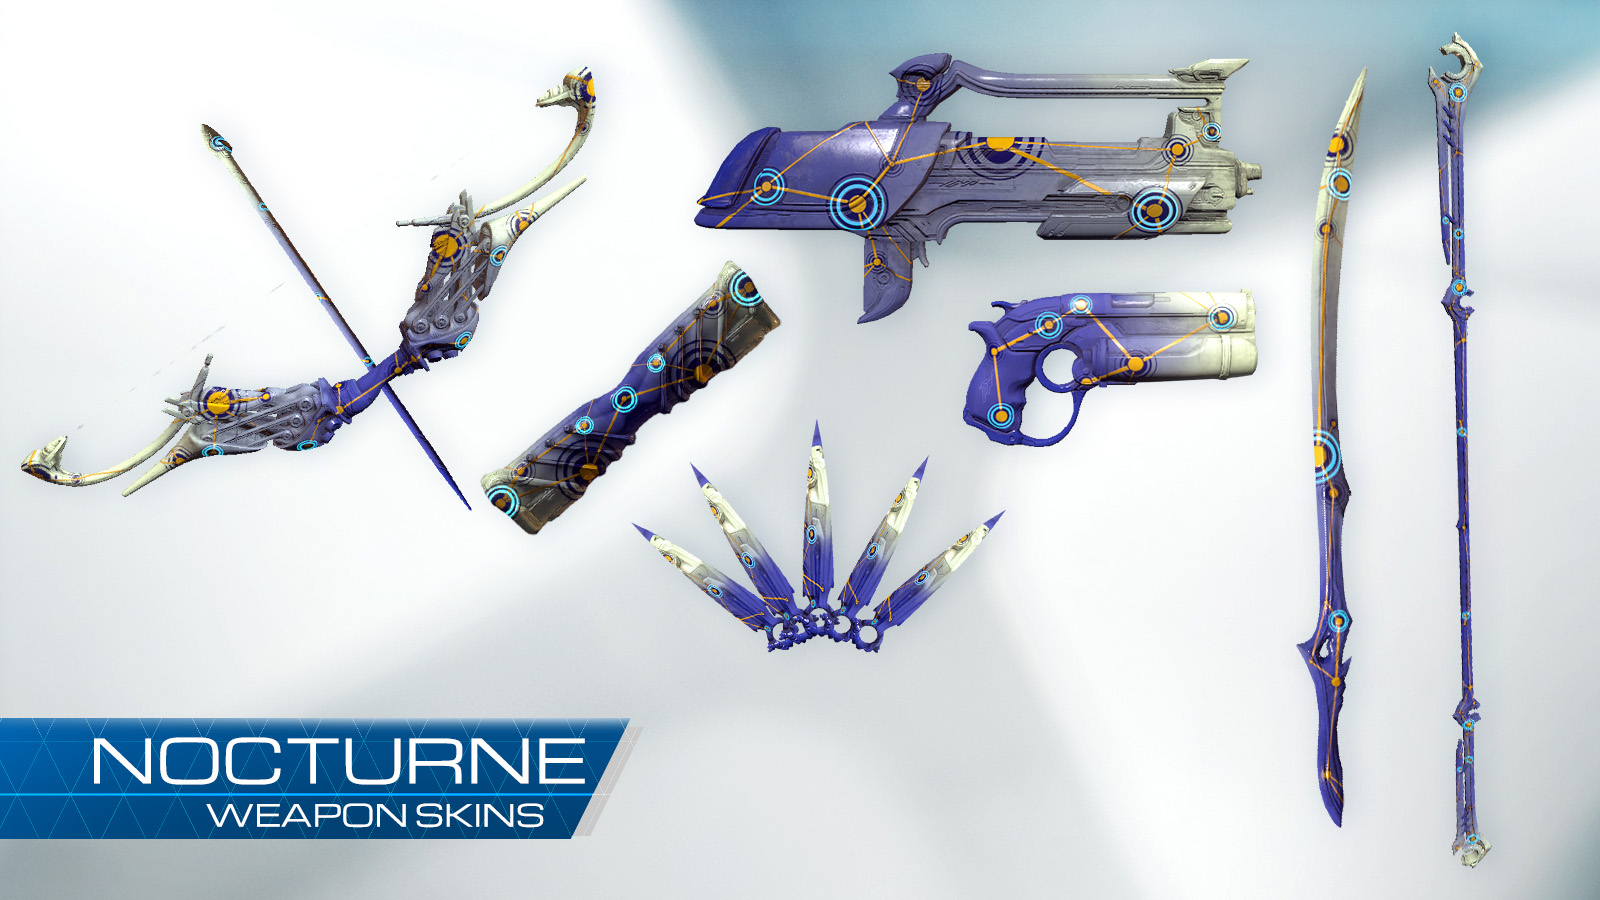 NOCTURNE WEAPON SKIN COLLECTION skins purchasable separately